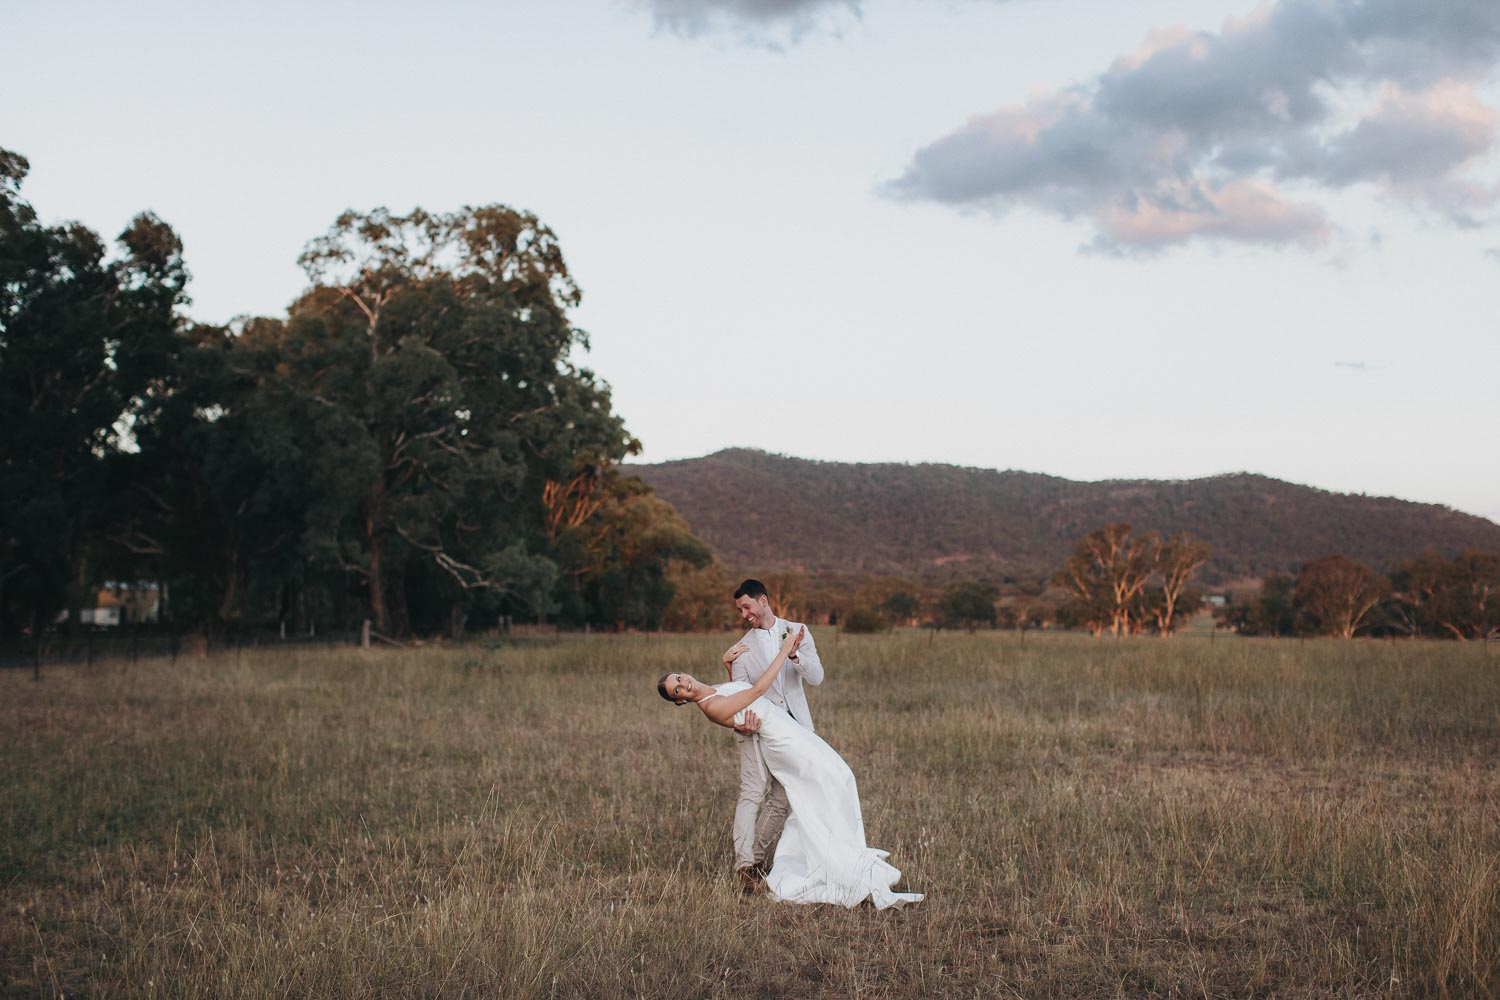 Feather_and_birch_Weddingphotography_internationalweddings_mudgeeweddingphotographer-9.jpg